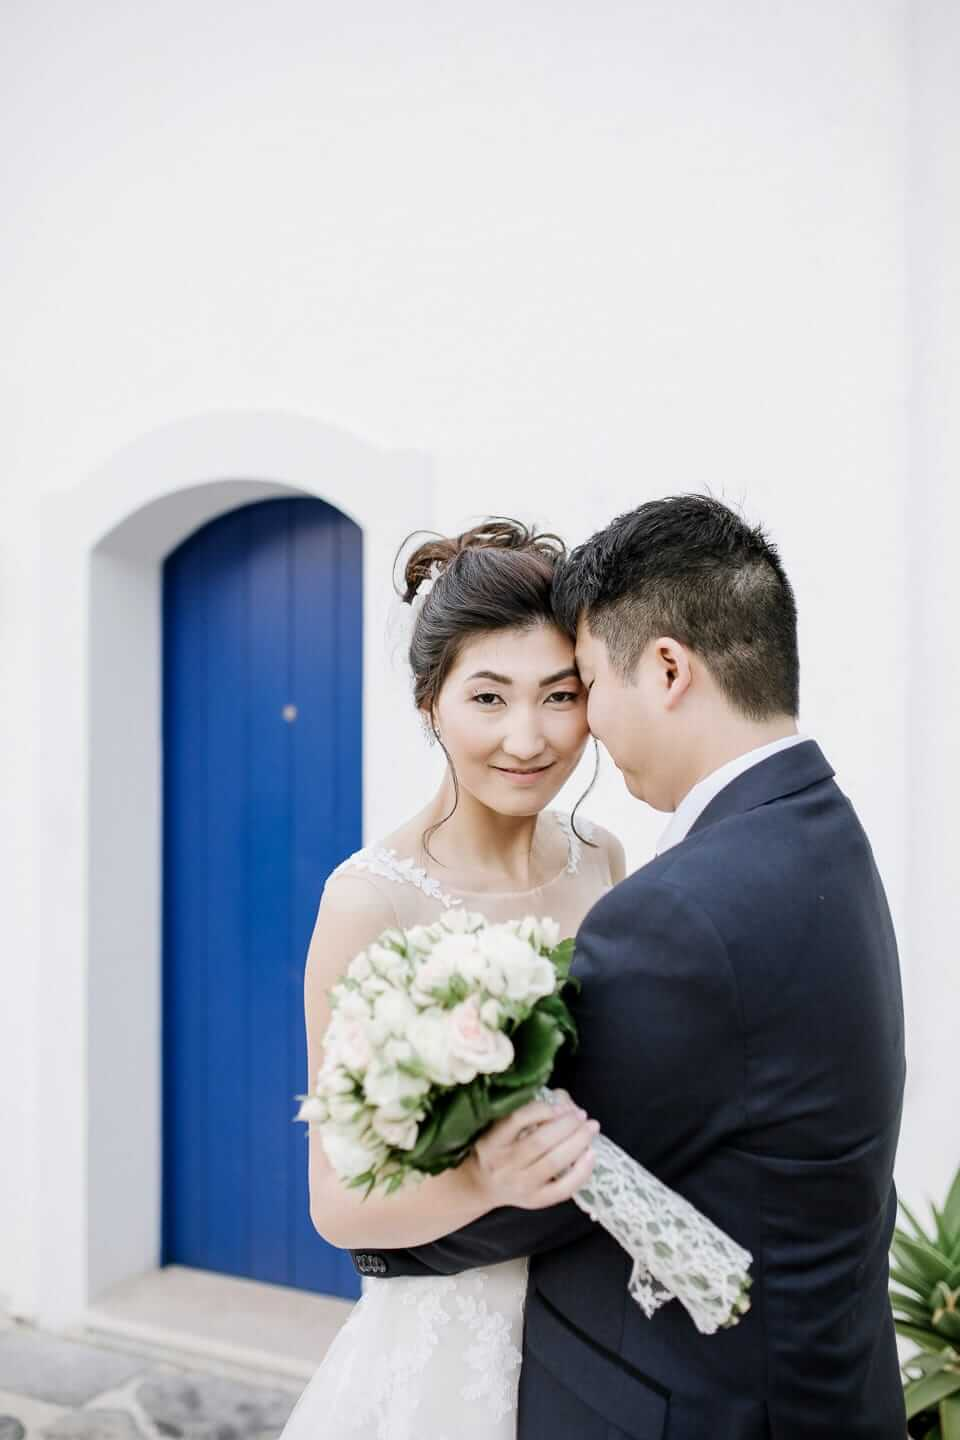 China Irini Koronaki Professional Wedding Photographer Photography Crete Chania Greece